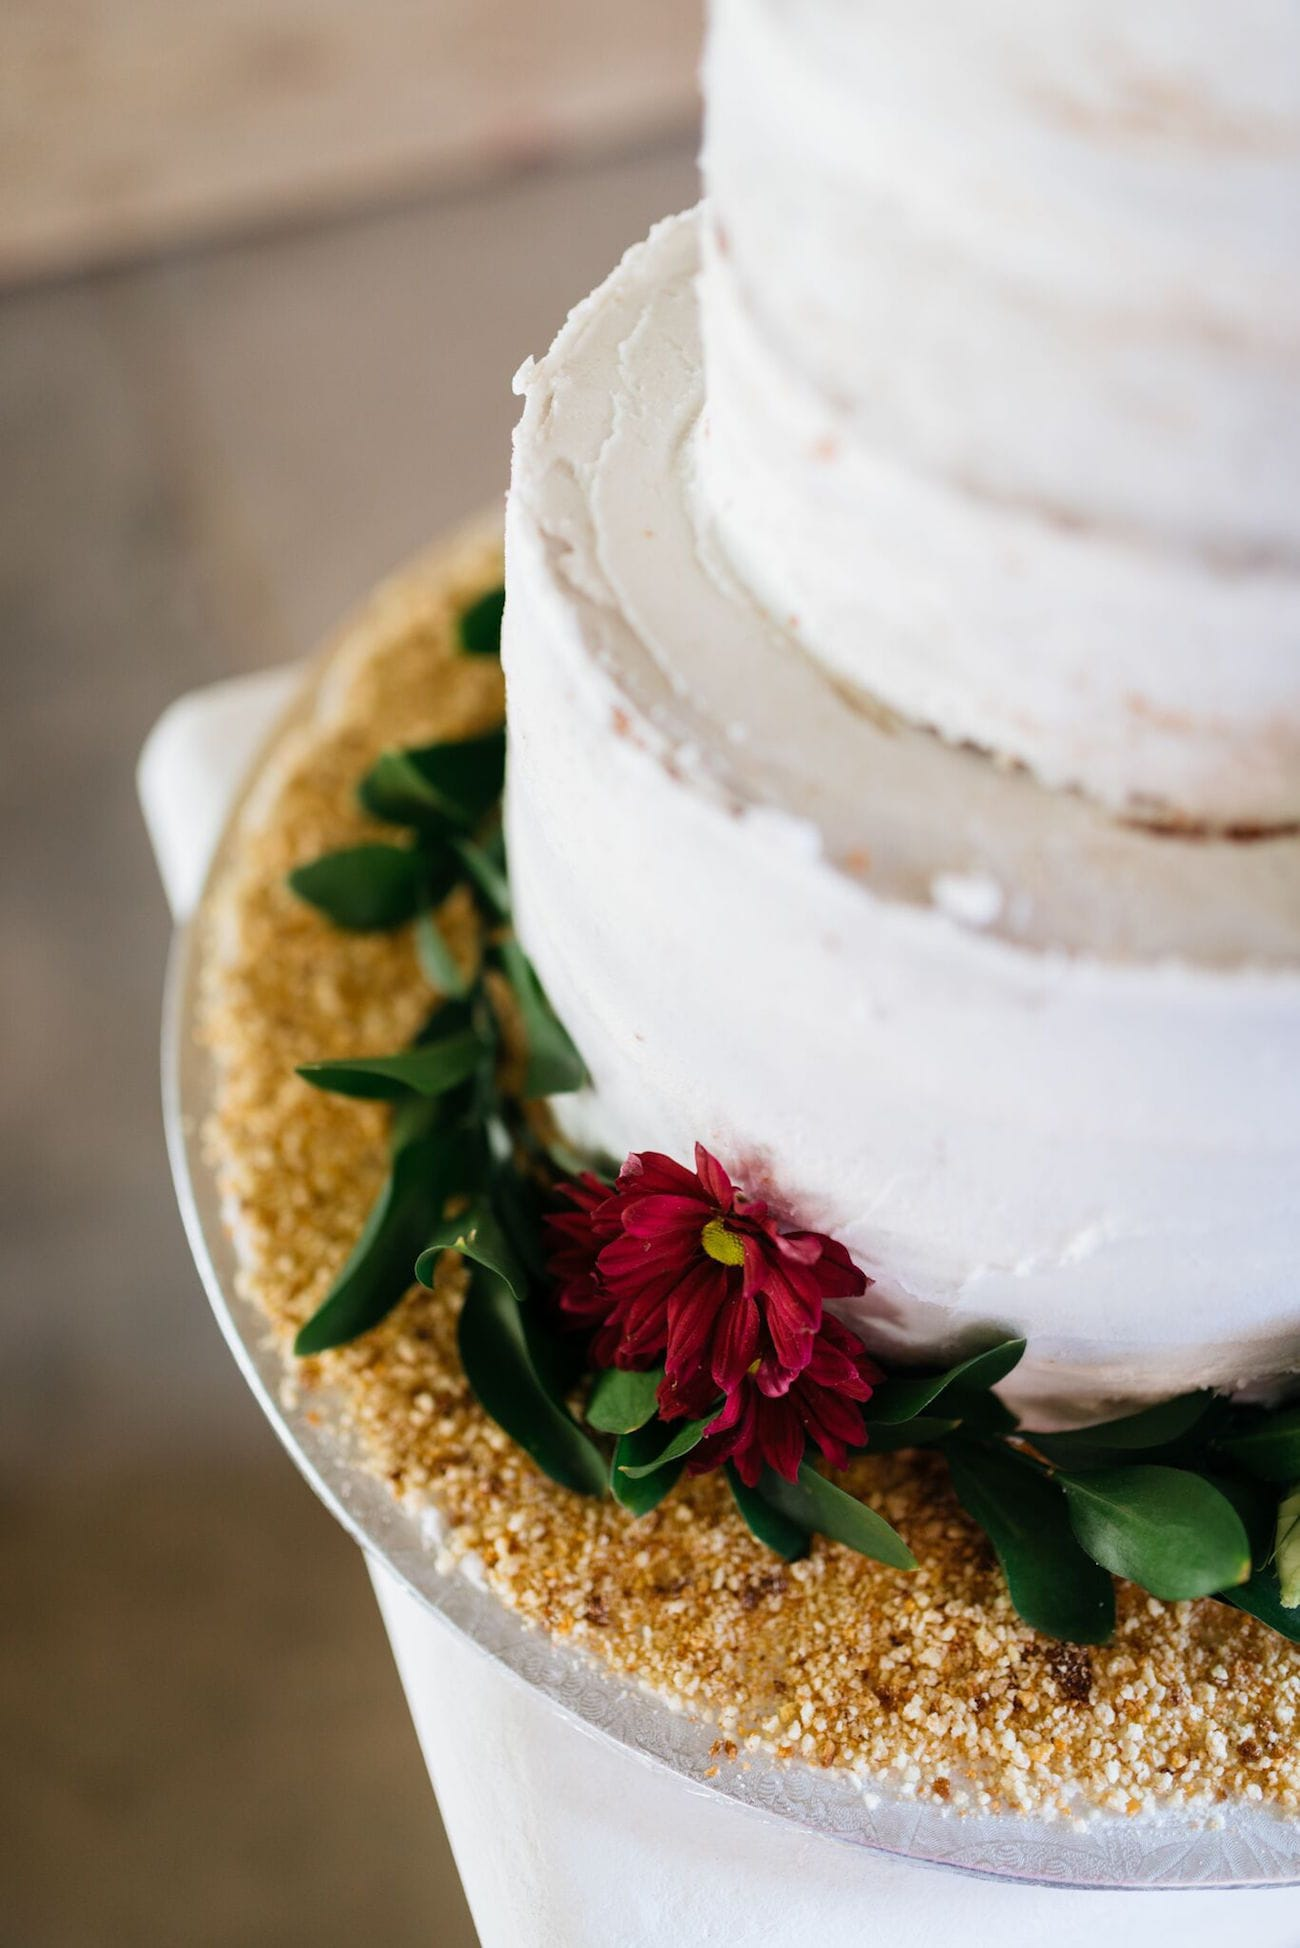 Cake decorated with glitter and greenery | Credit: Matthew Carr